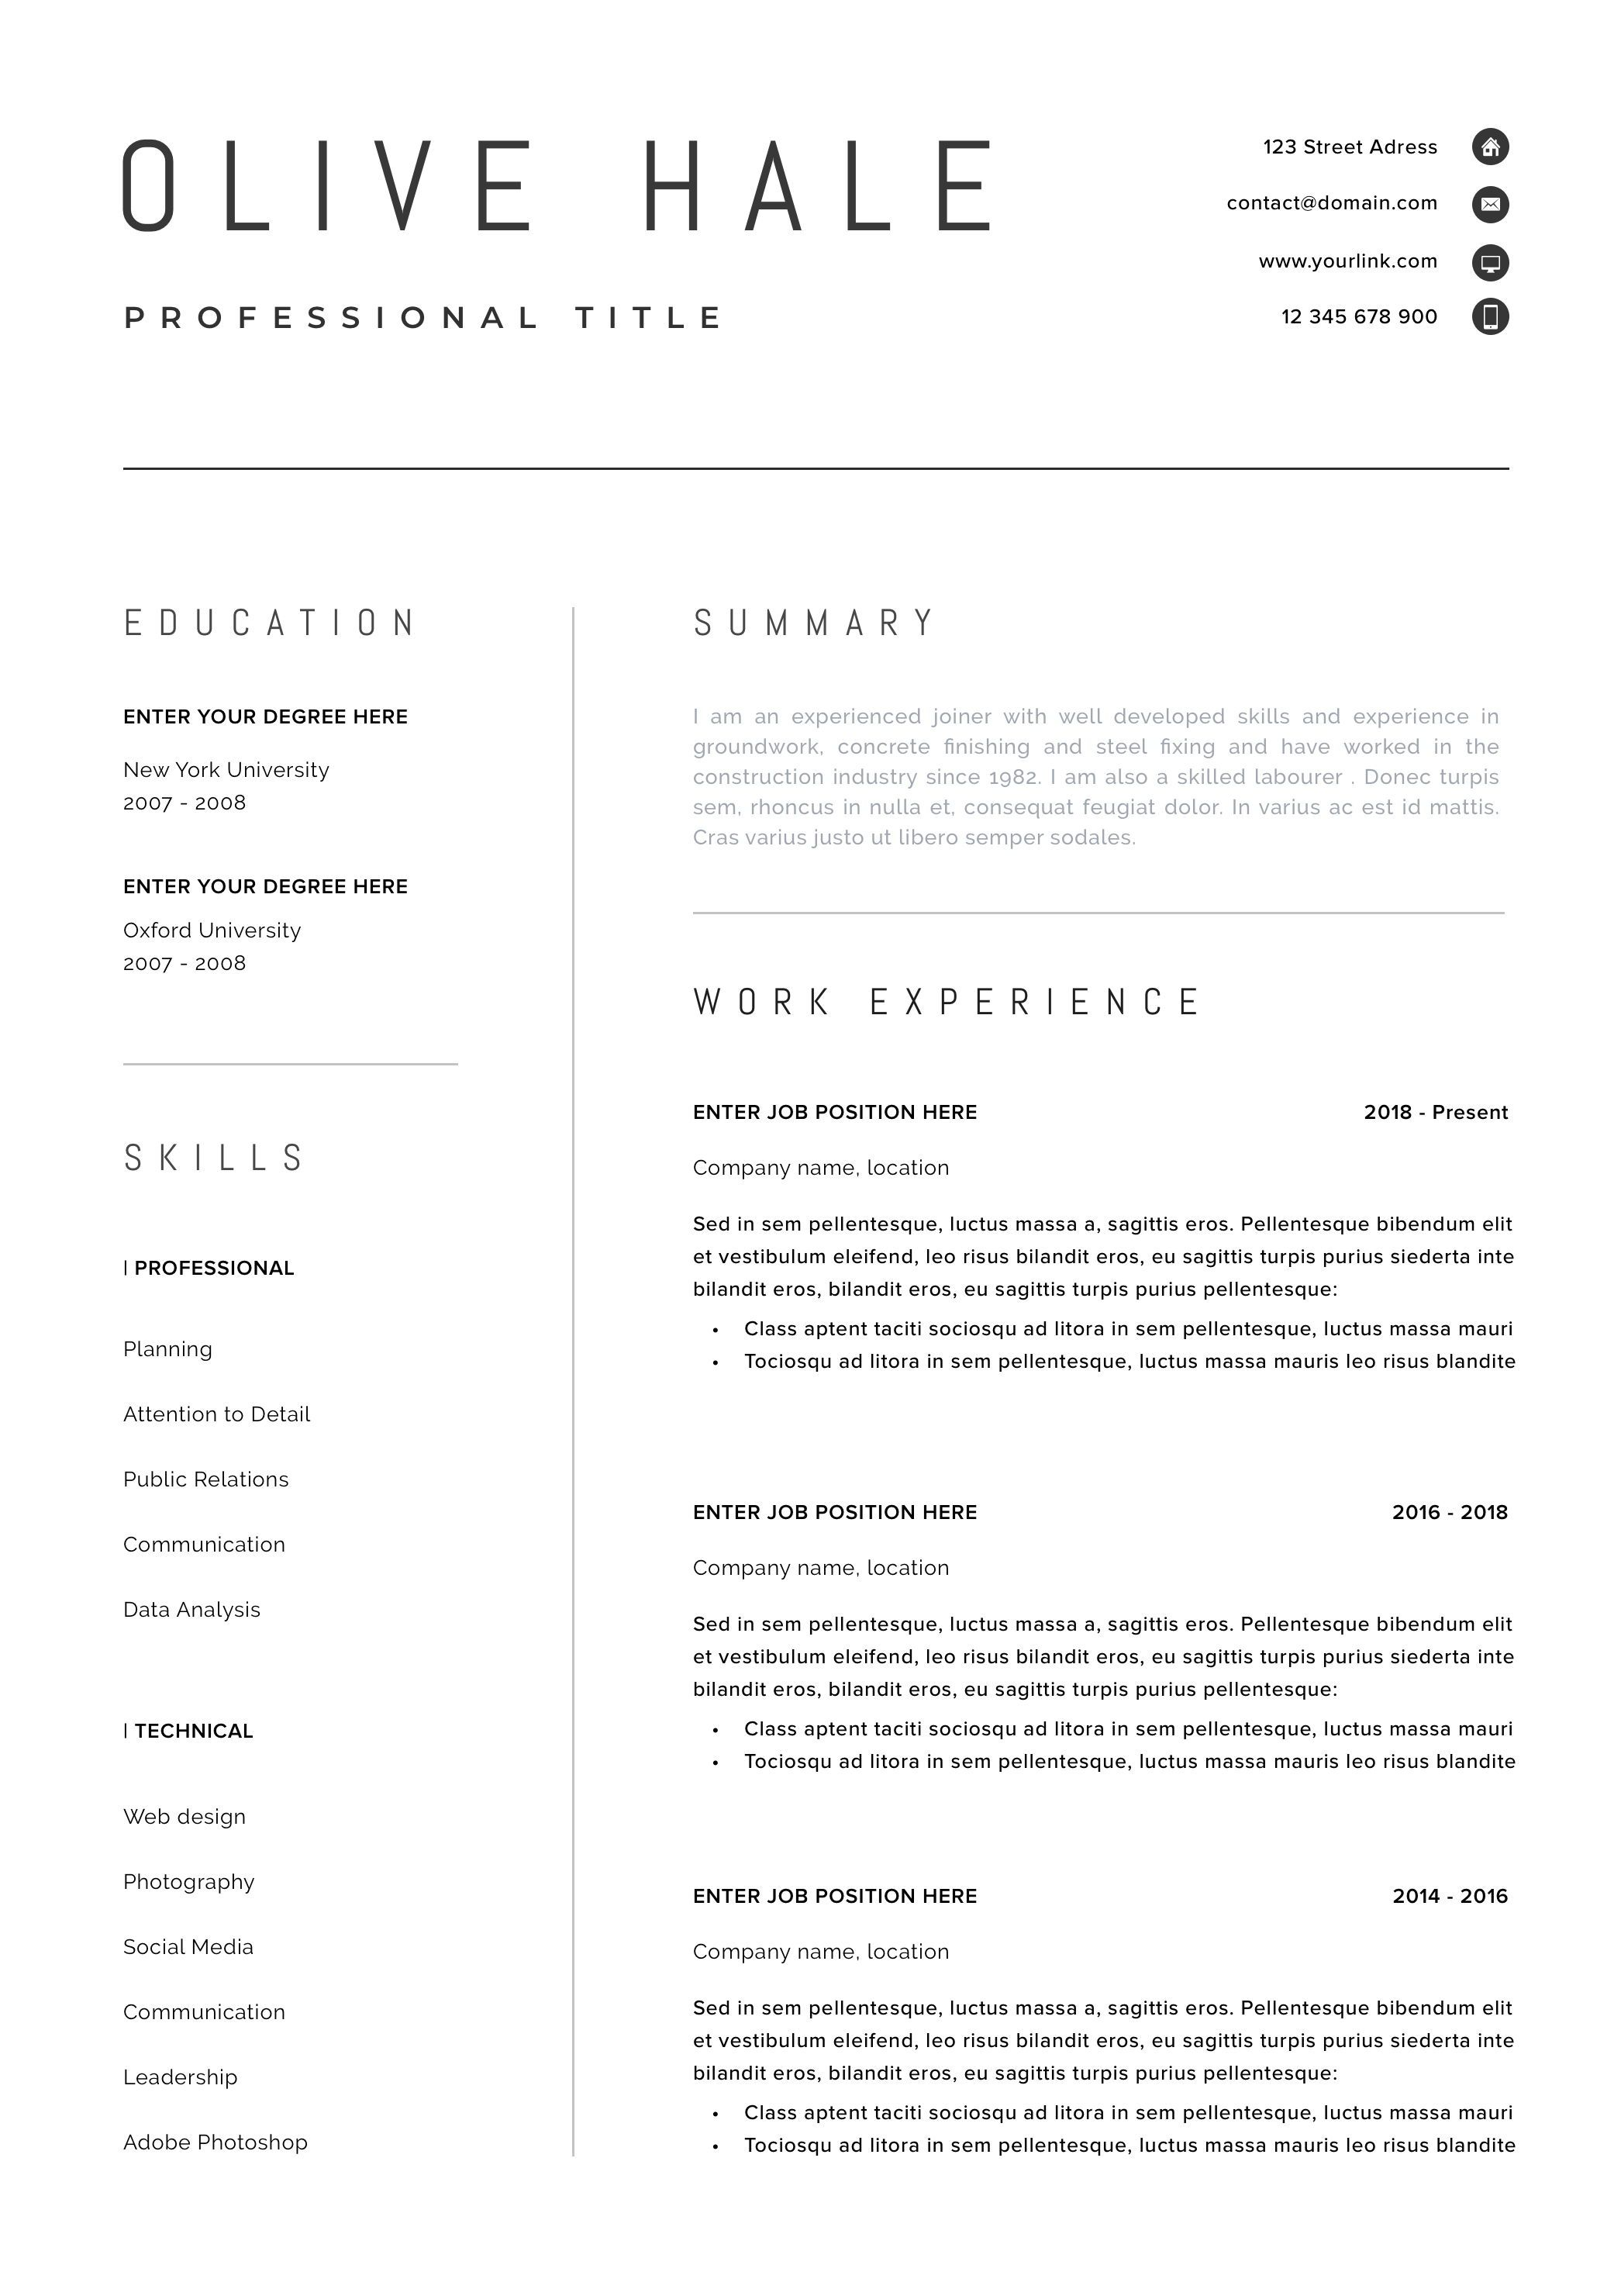 professional resume template  clean  u0026 modern resume template  one page resume  instant download